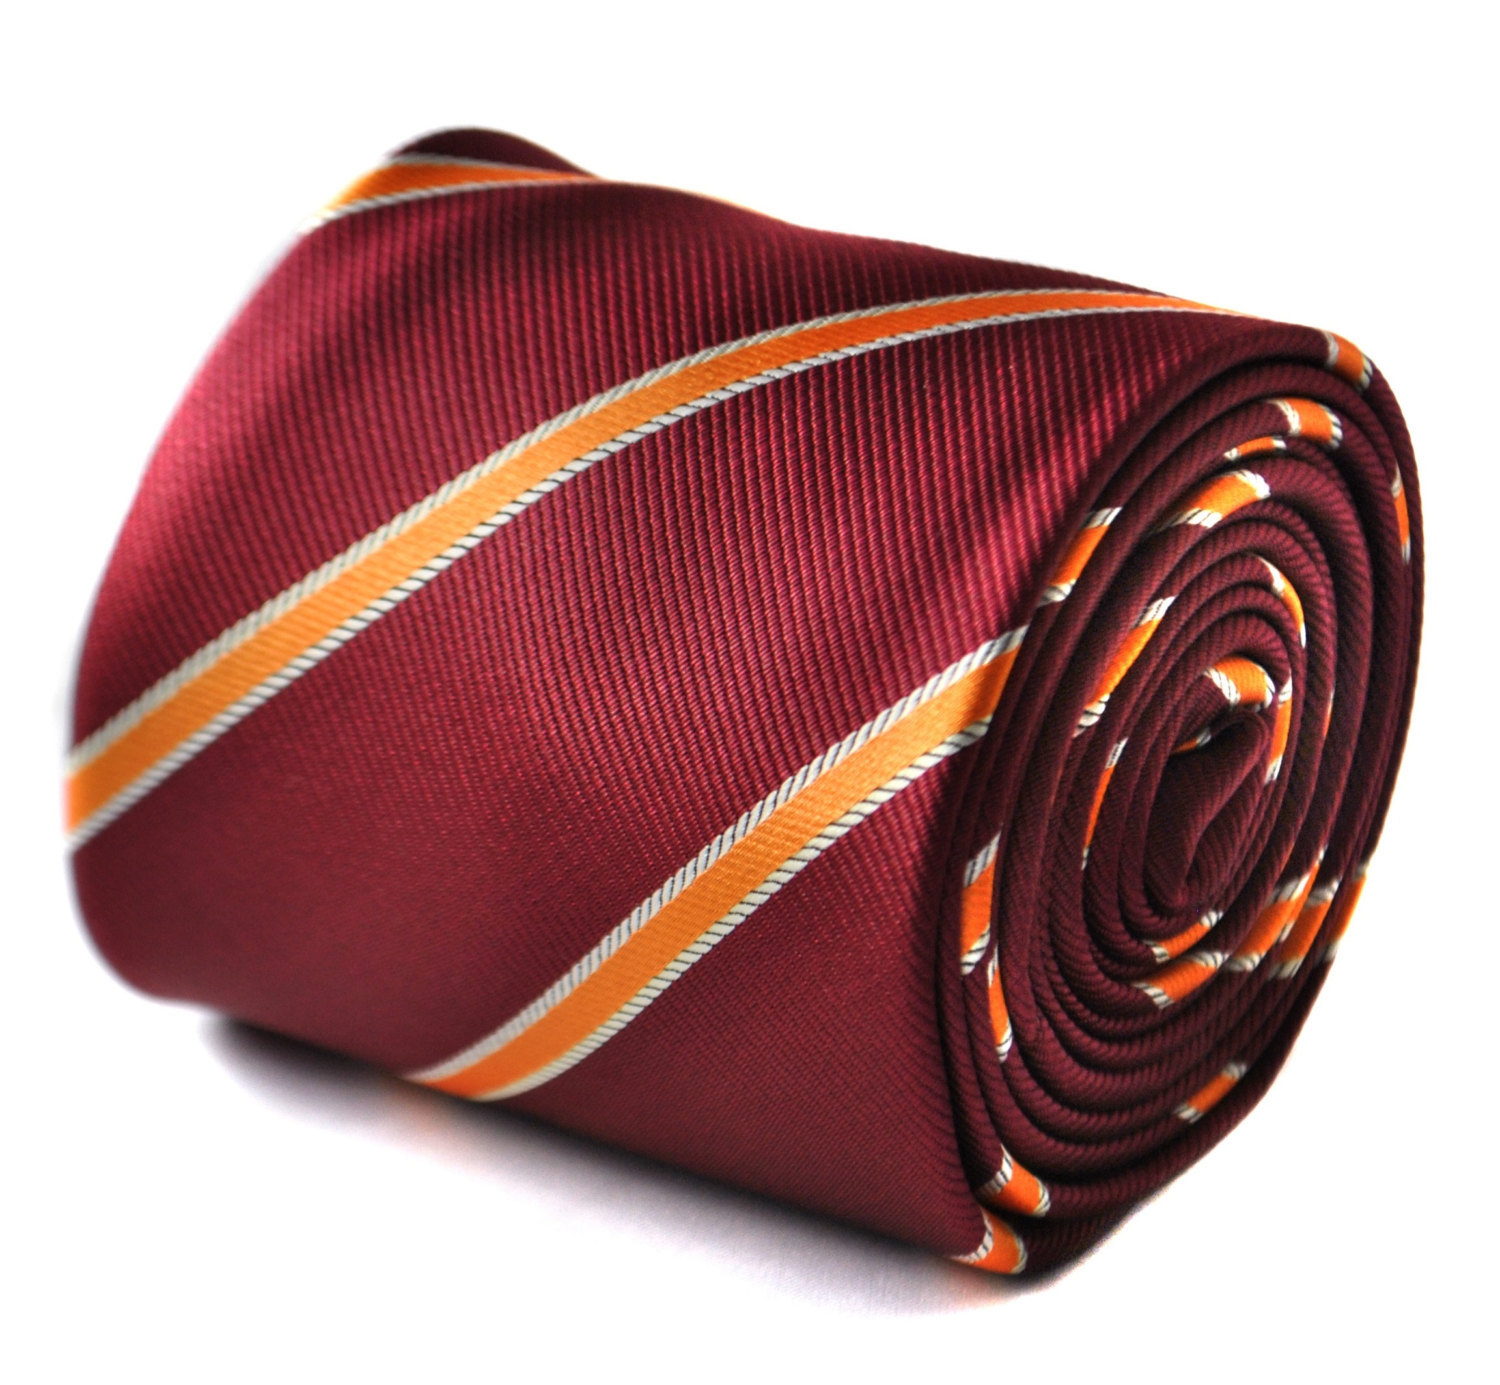 maroon and orange ribbon striped tie with signature floral design to the rear by